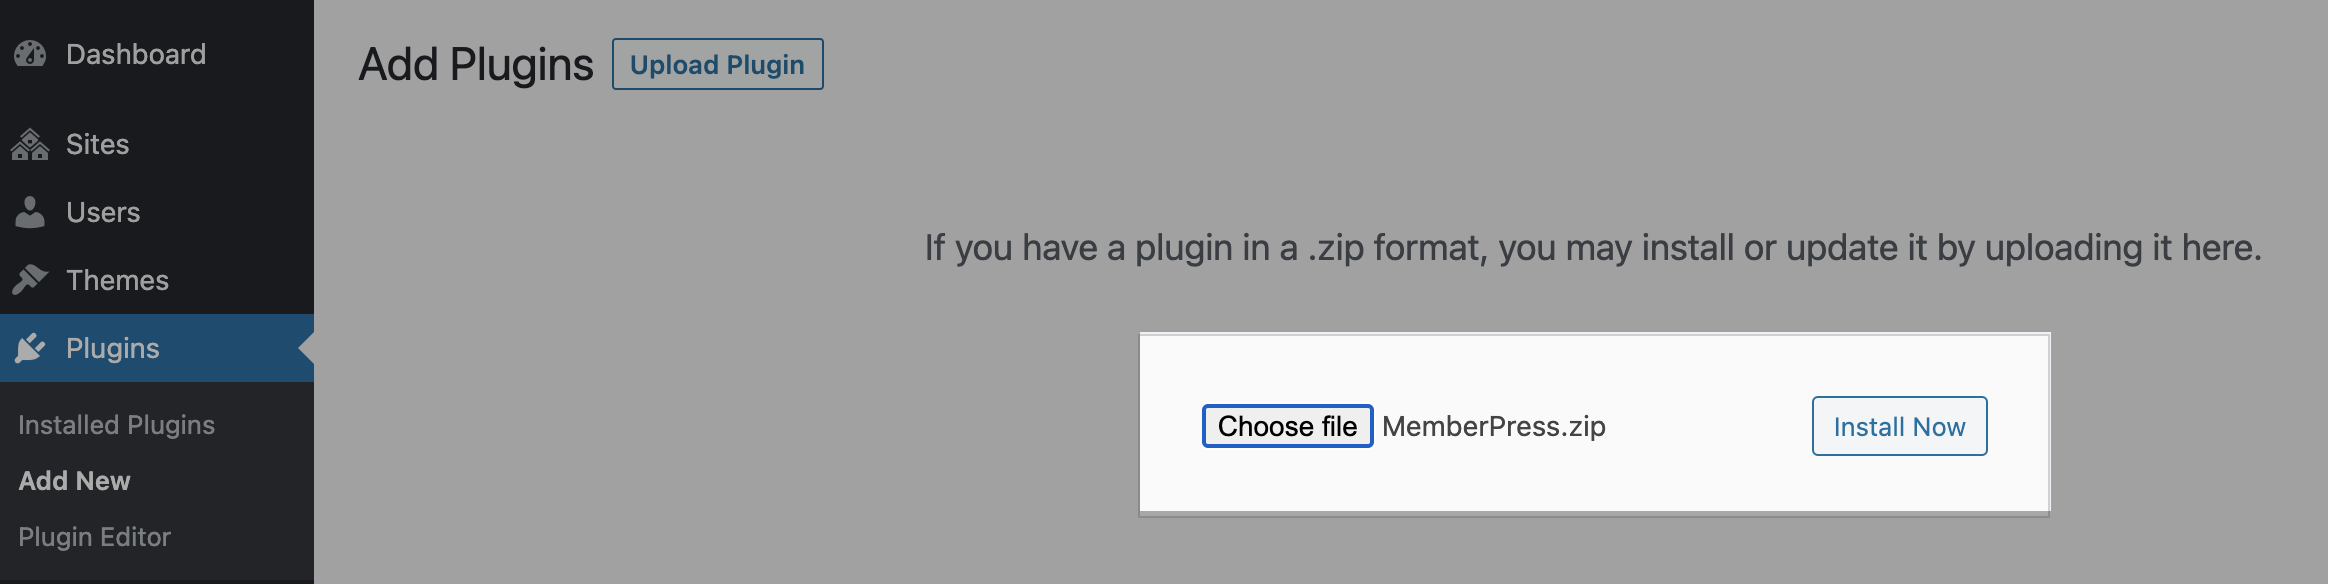 how to upload a plugin to wordpress